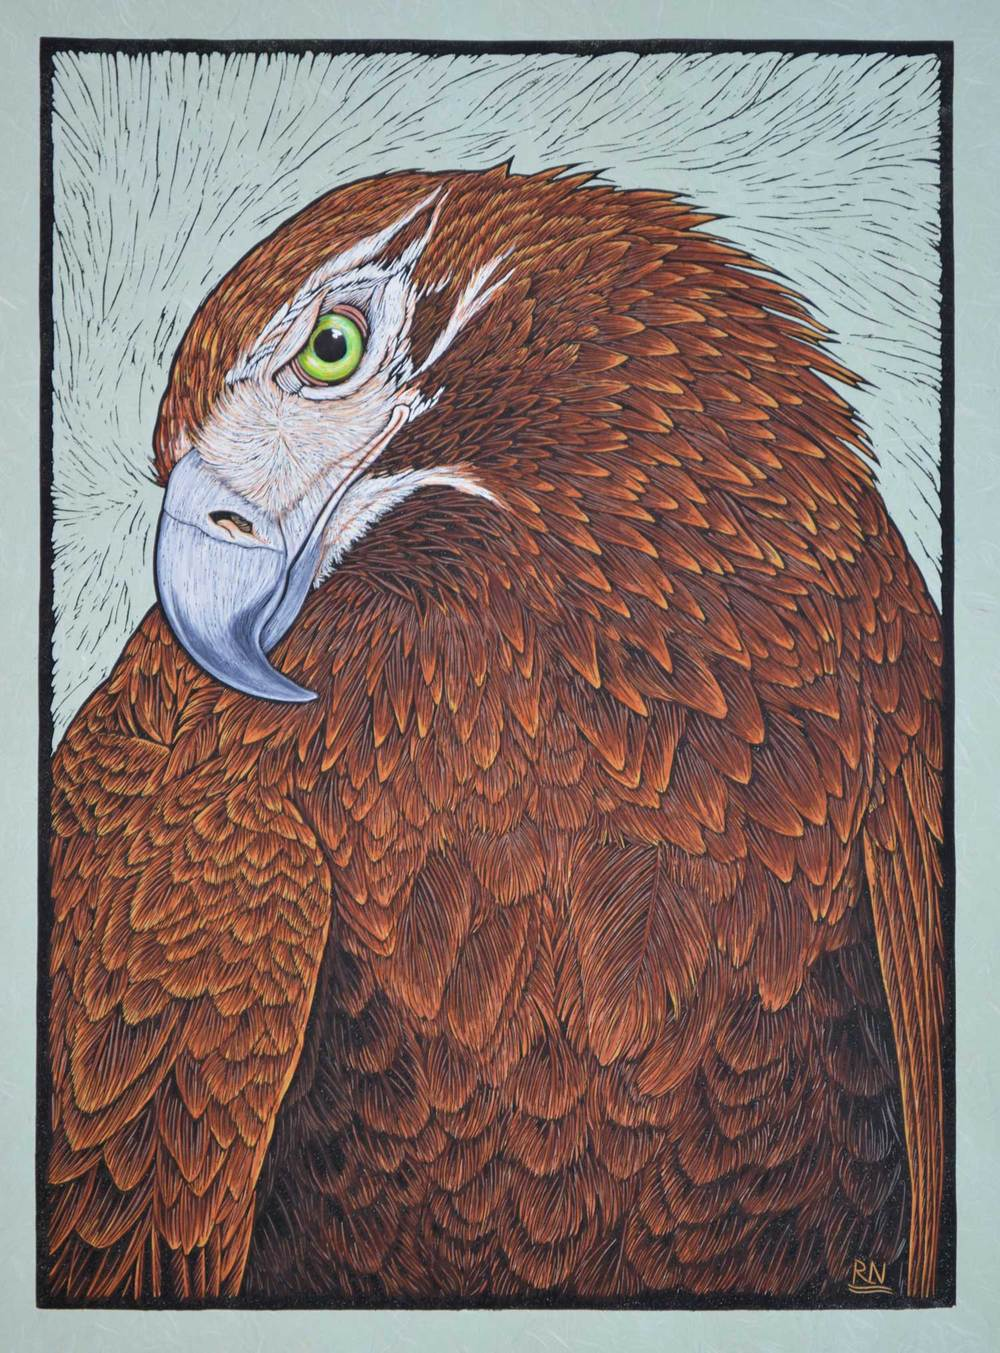 WEDGE TAILED EAGLE 51.5 X 37 CM    EDITION OF 50 HAND COLOURED LINOCUT ON HANDMADE JAPANESE PAPER $1,000